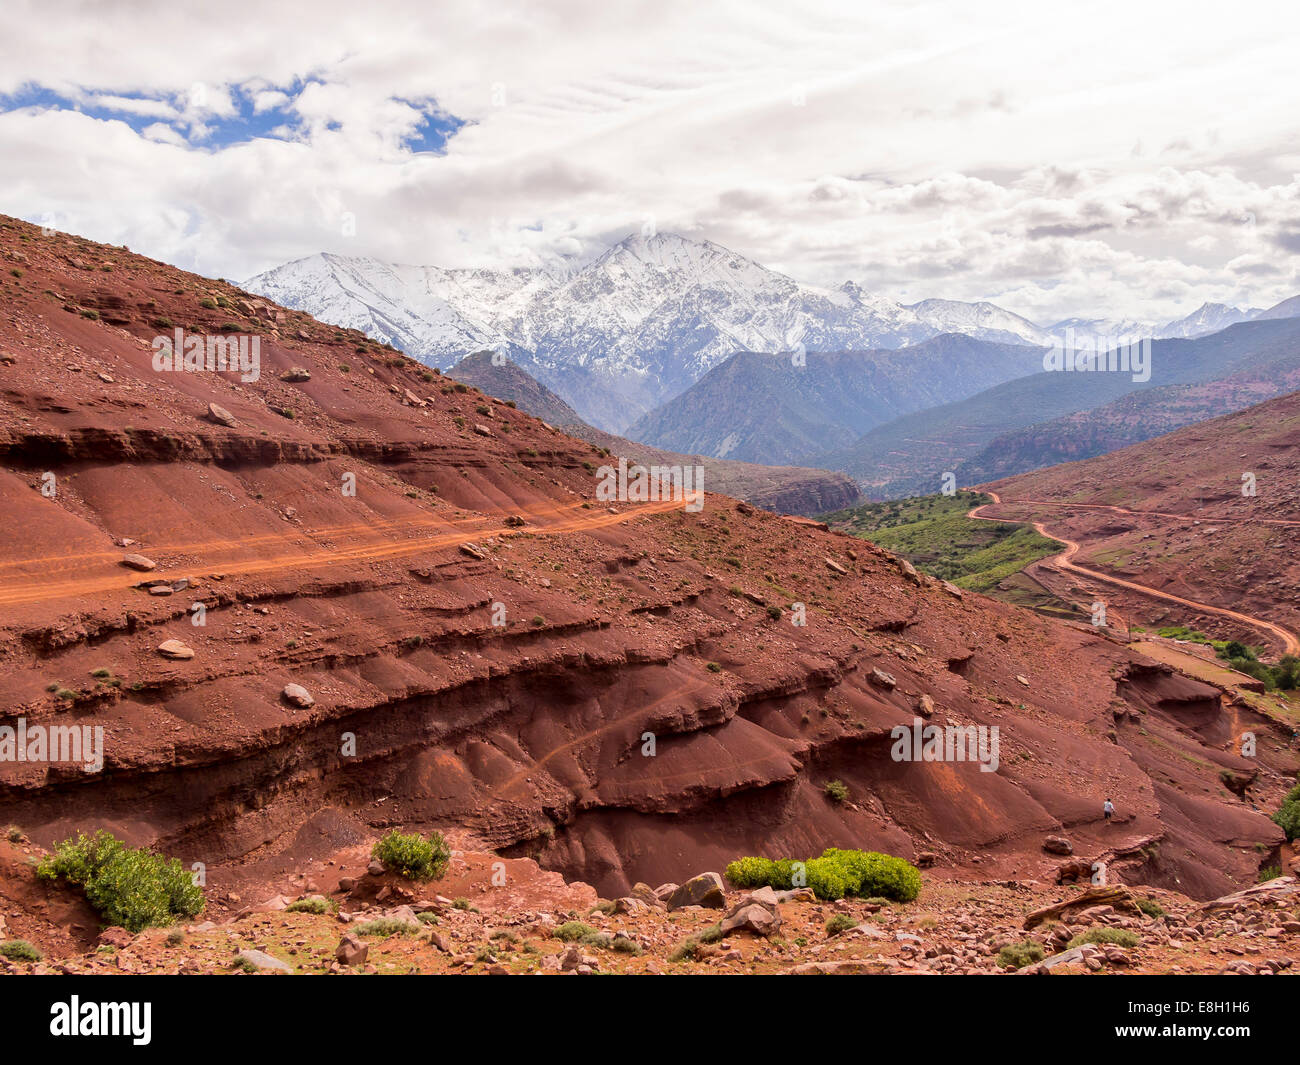 Morocco, Atlas Mountains, Ourika Valley, clay paths in mountains - Stock Image